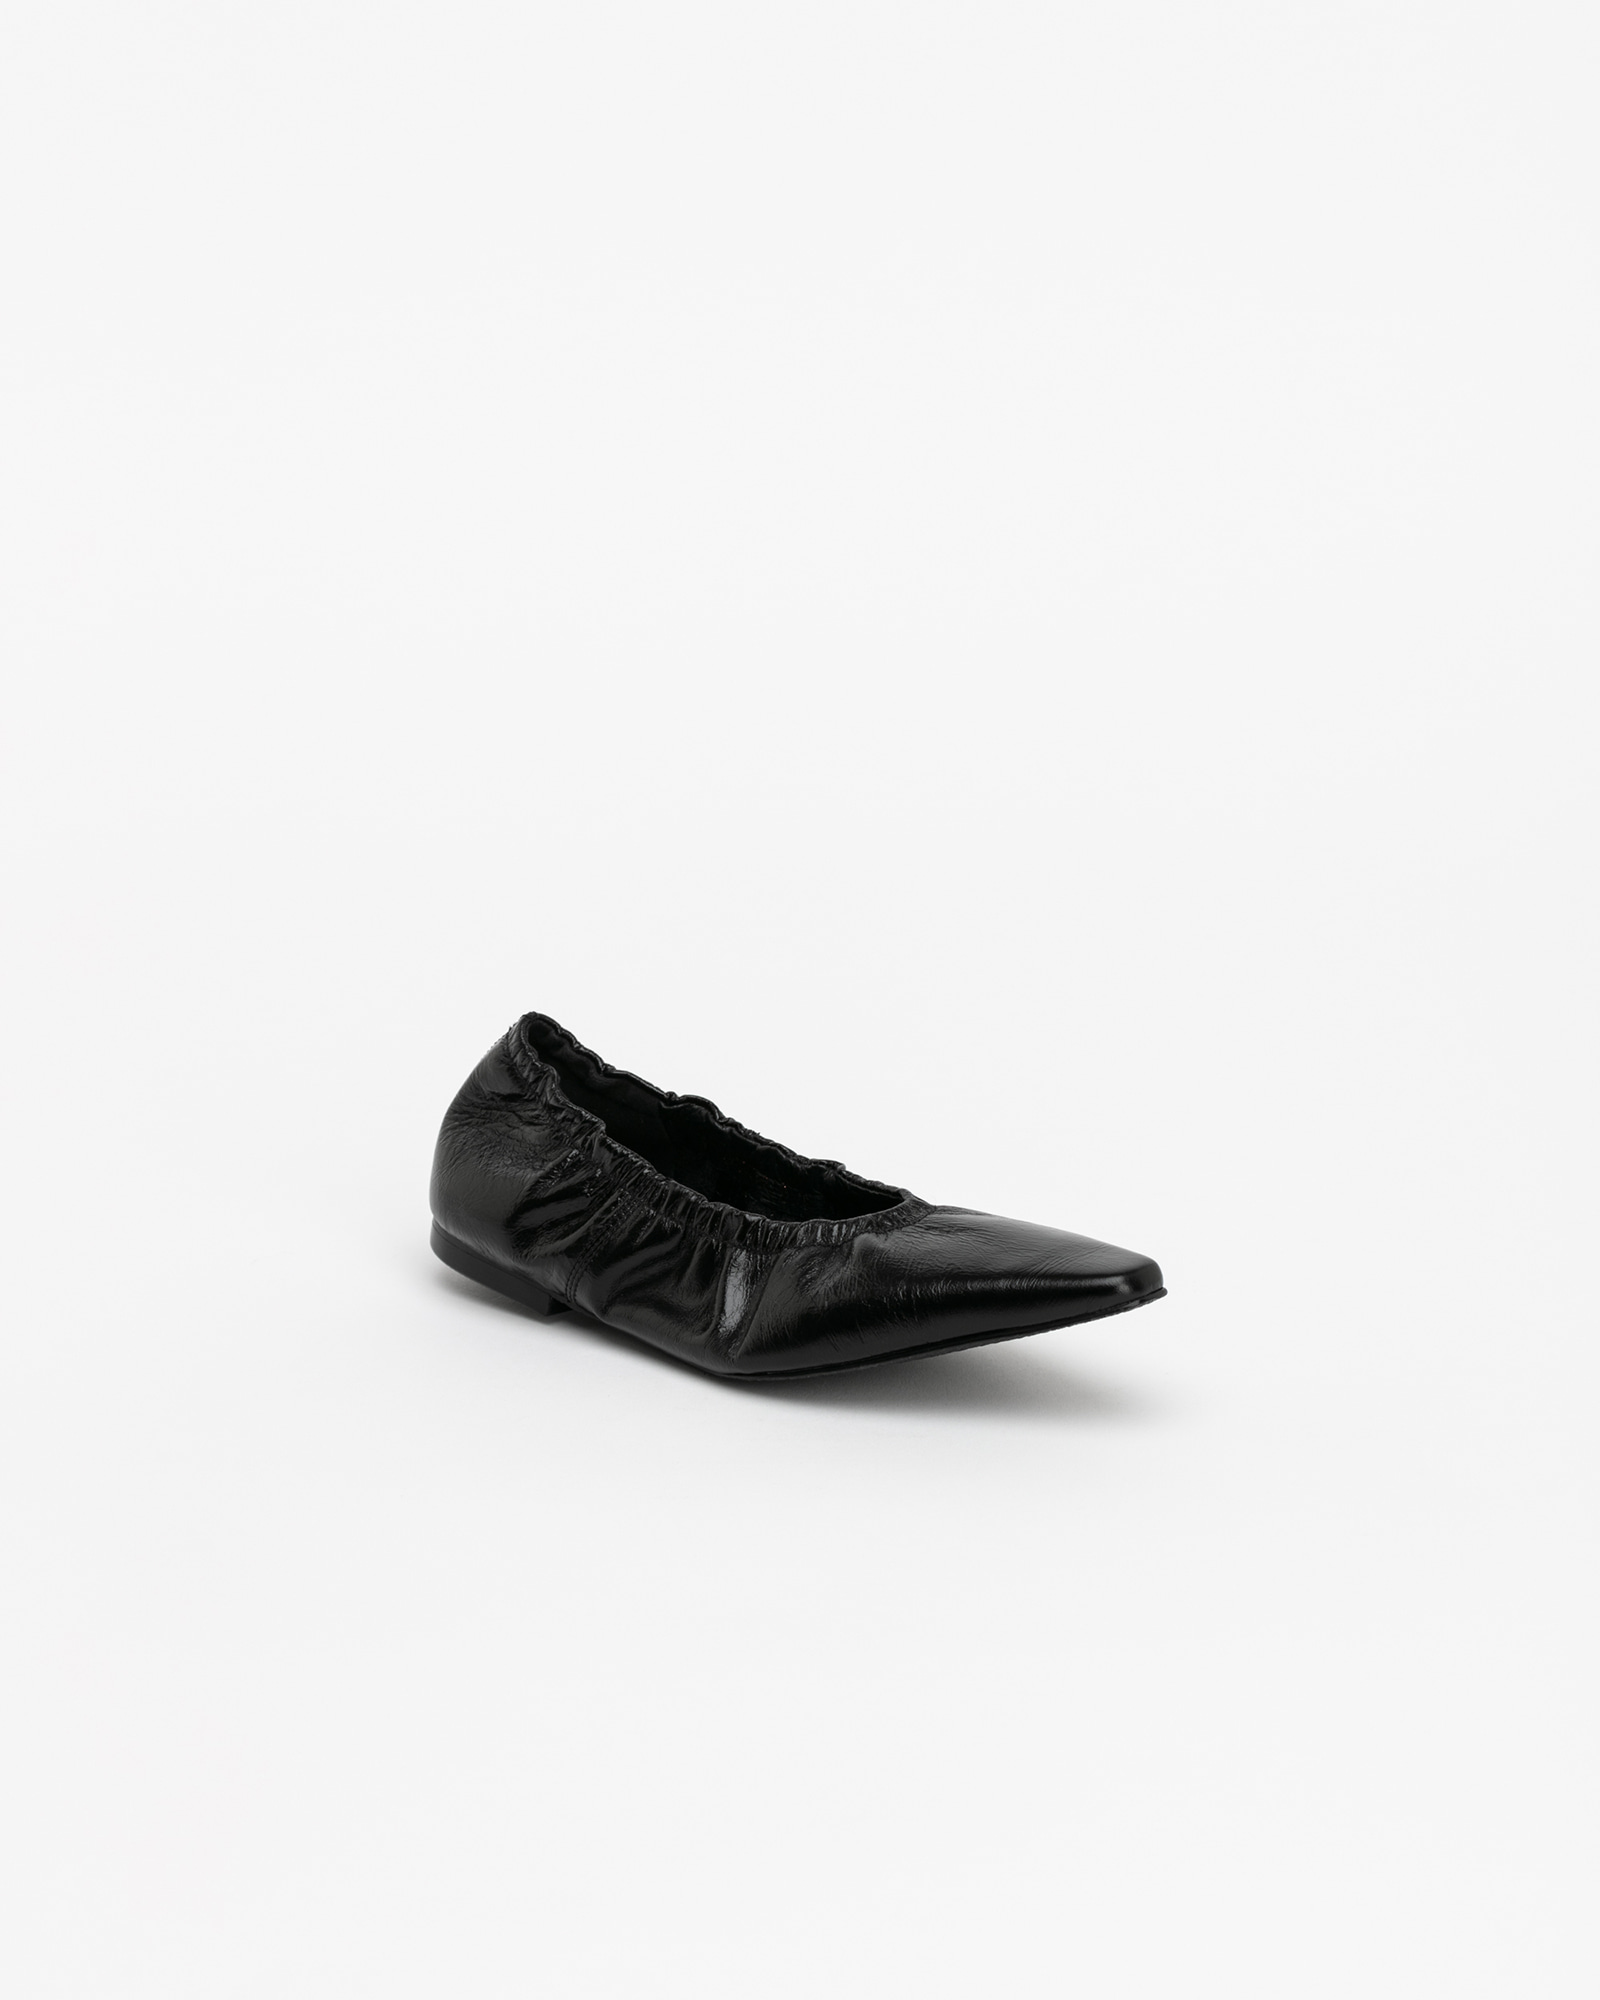 Arnaud Soft Flat Shoes in Wrinkled Black